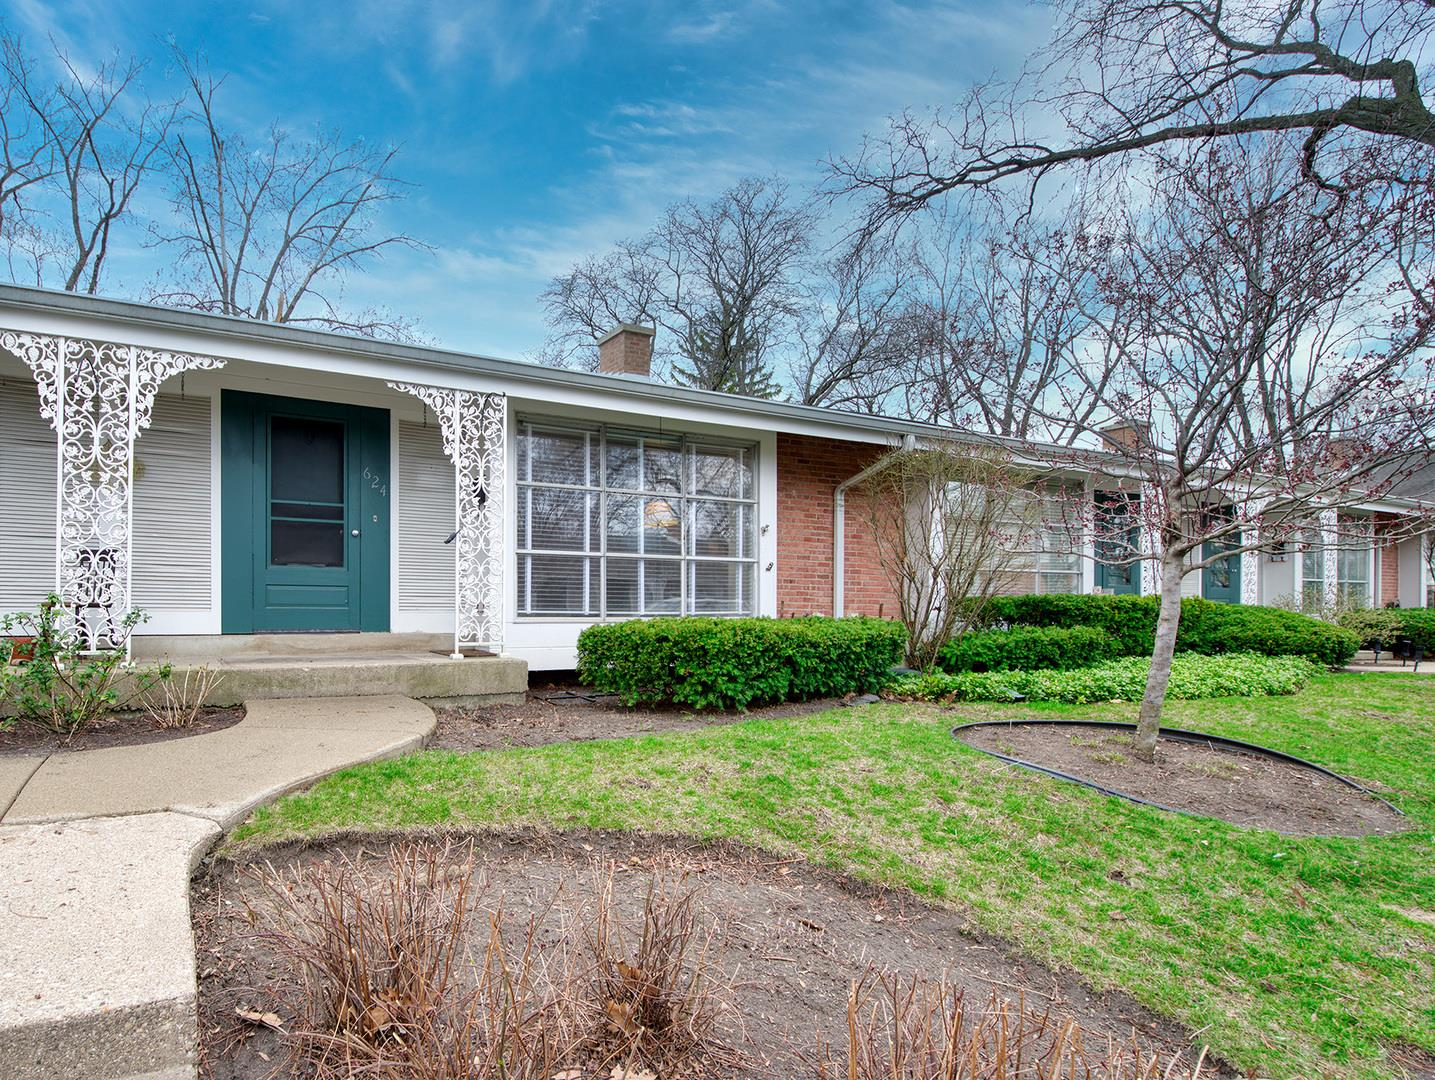 624 Carriage Hill Drive #624, Glenview, IL 60025 - #: 11046035